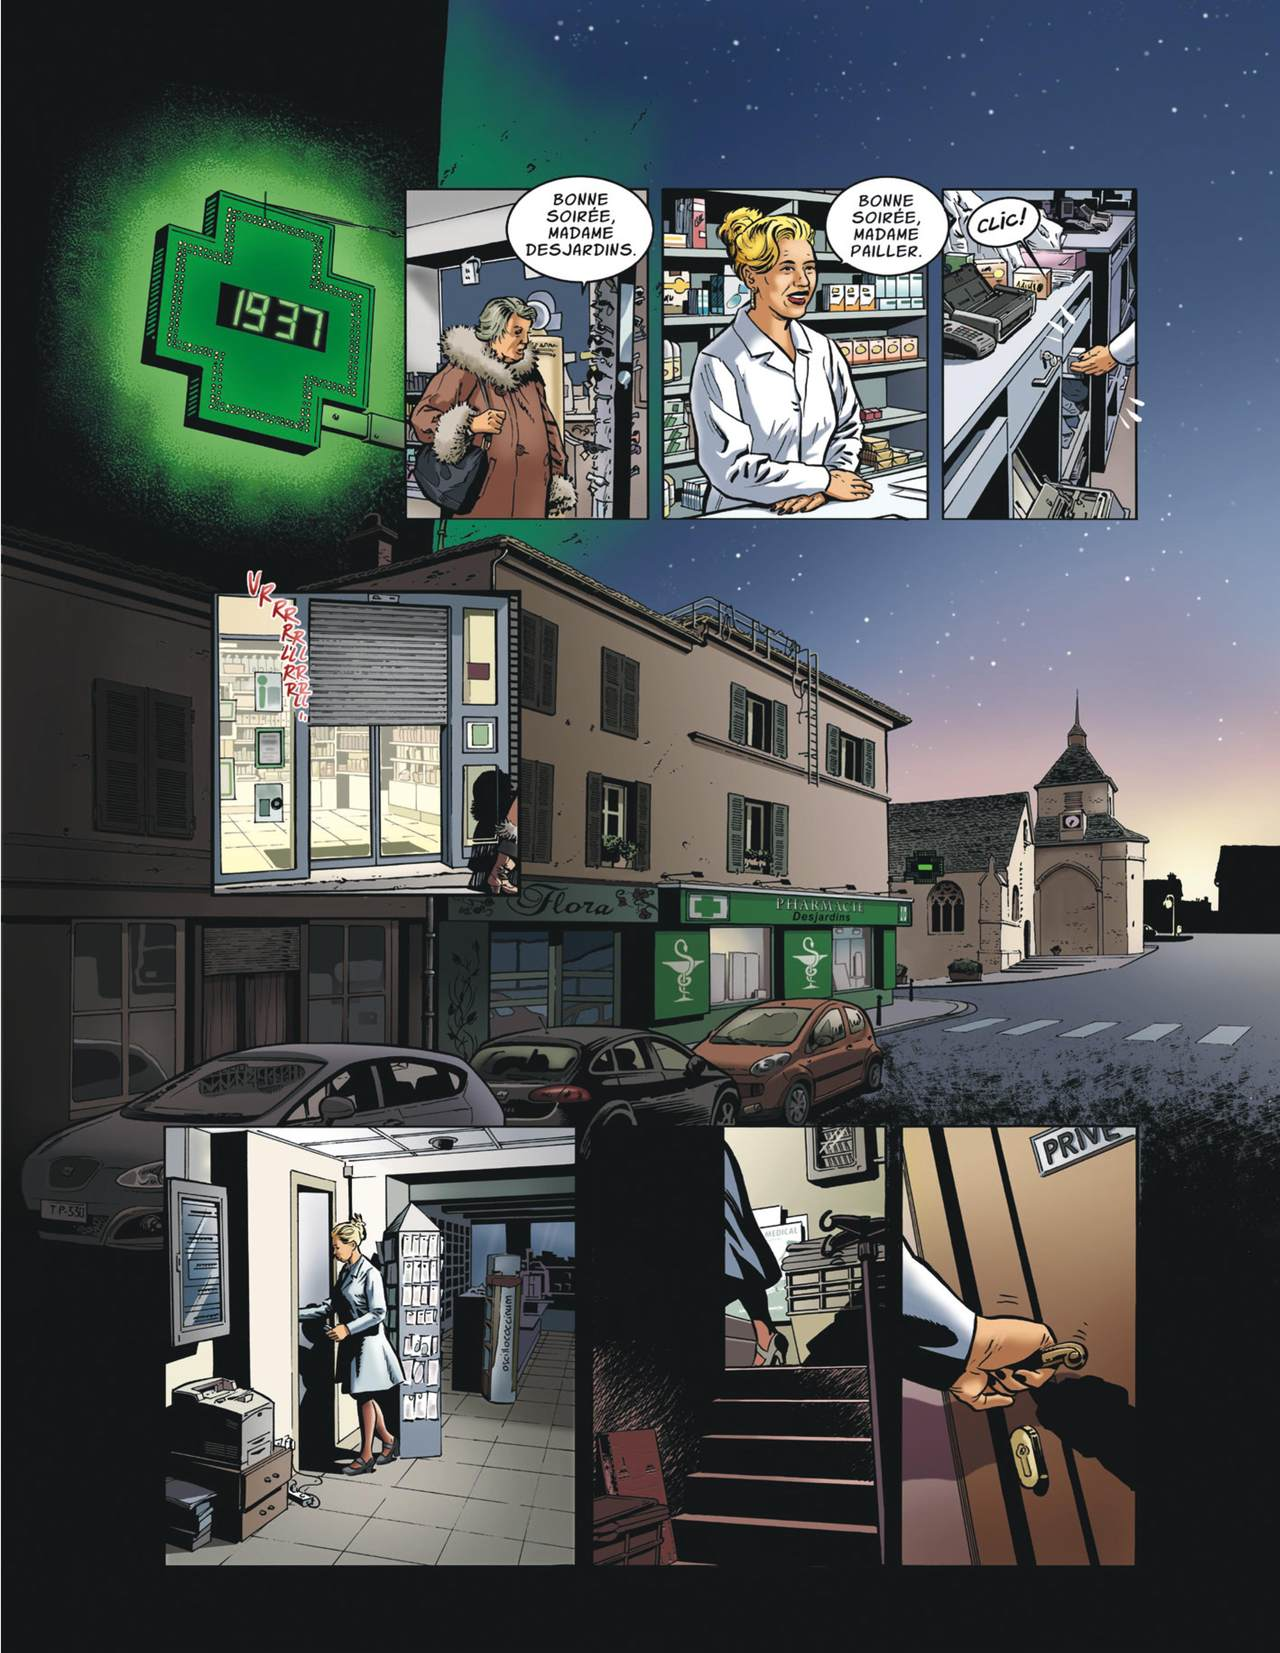 Esparbec – The Pharmacist (French)